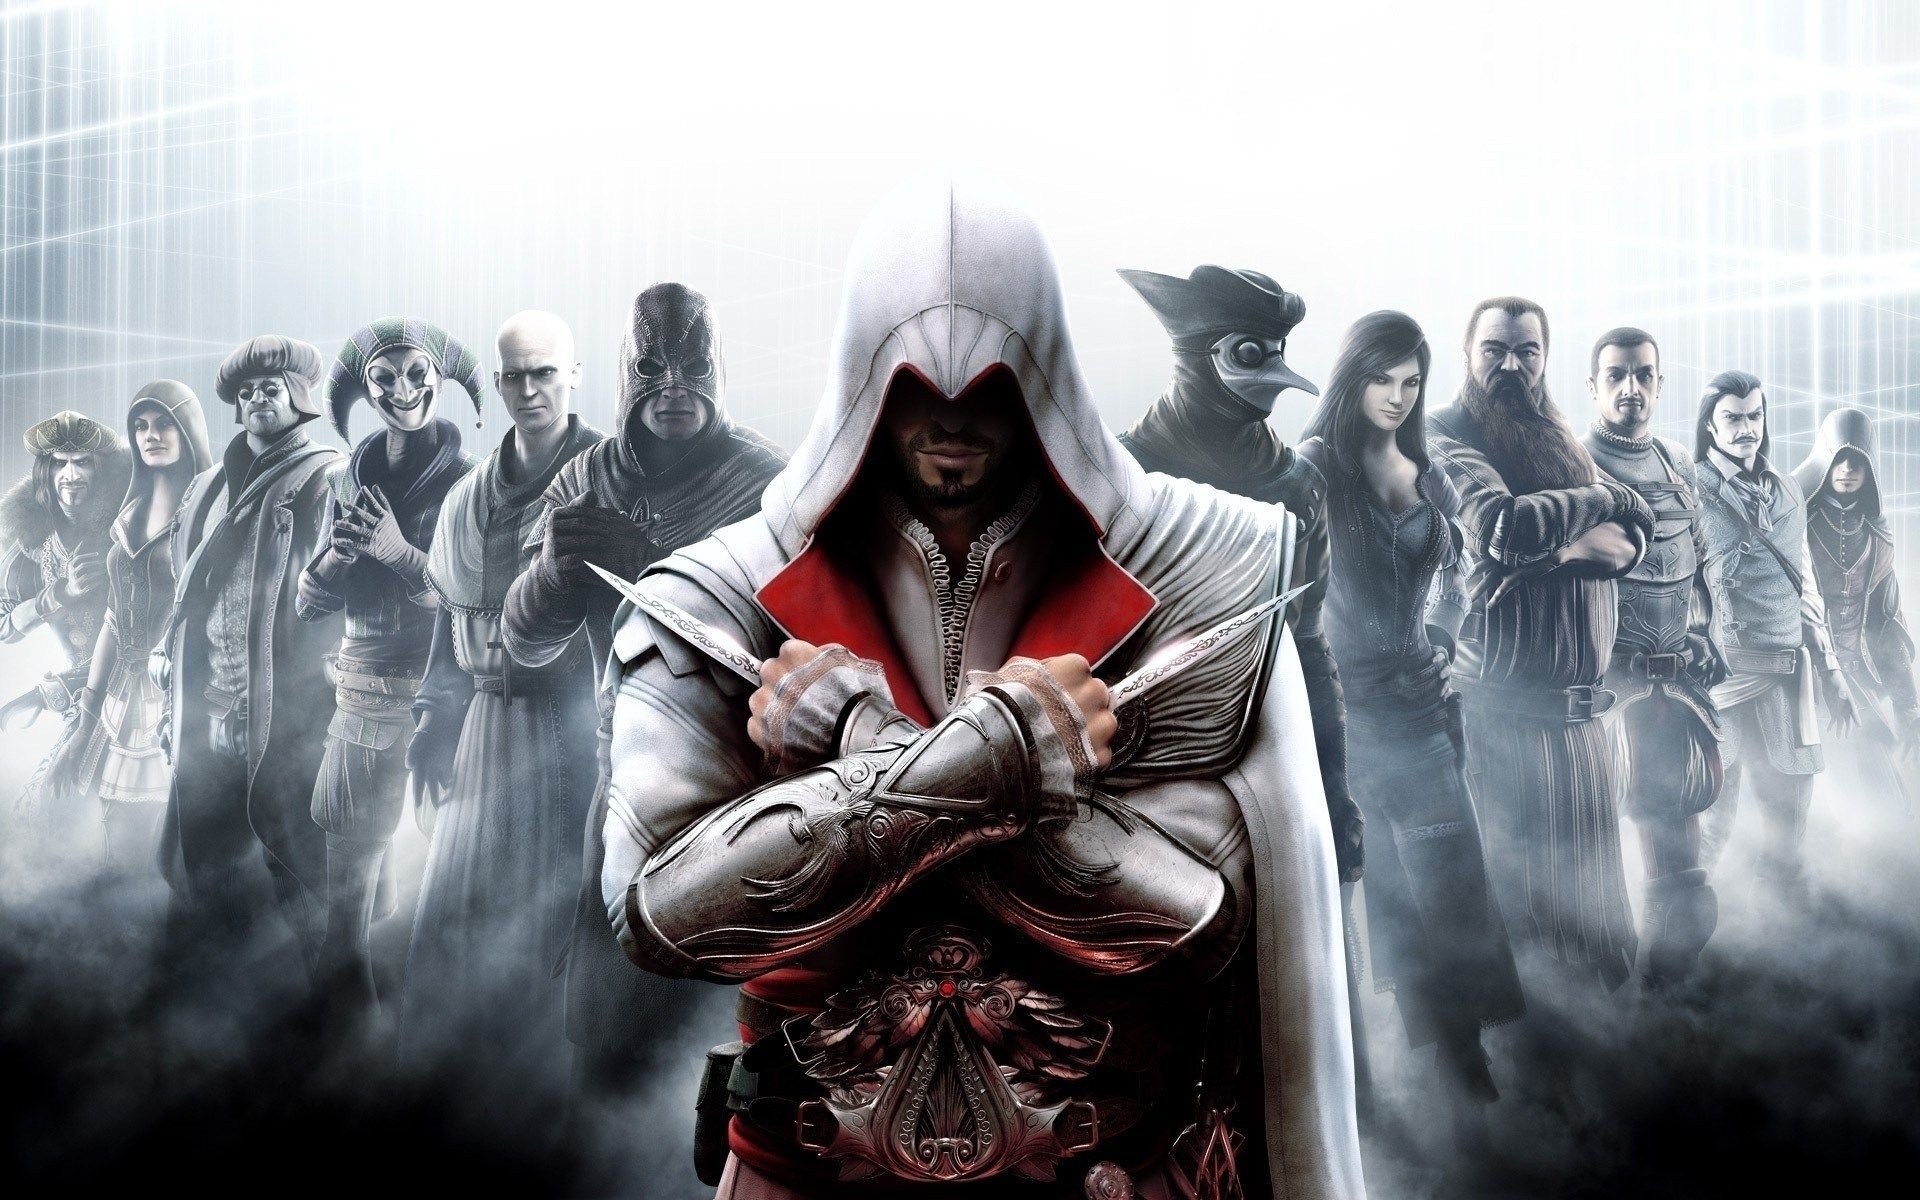 assassins creed brotherhood all characters game hd wallpaper